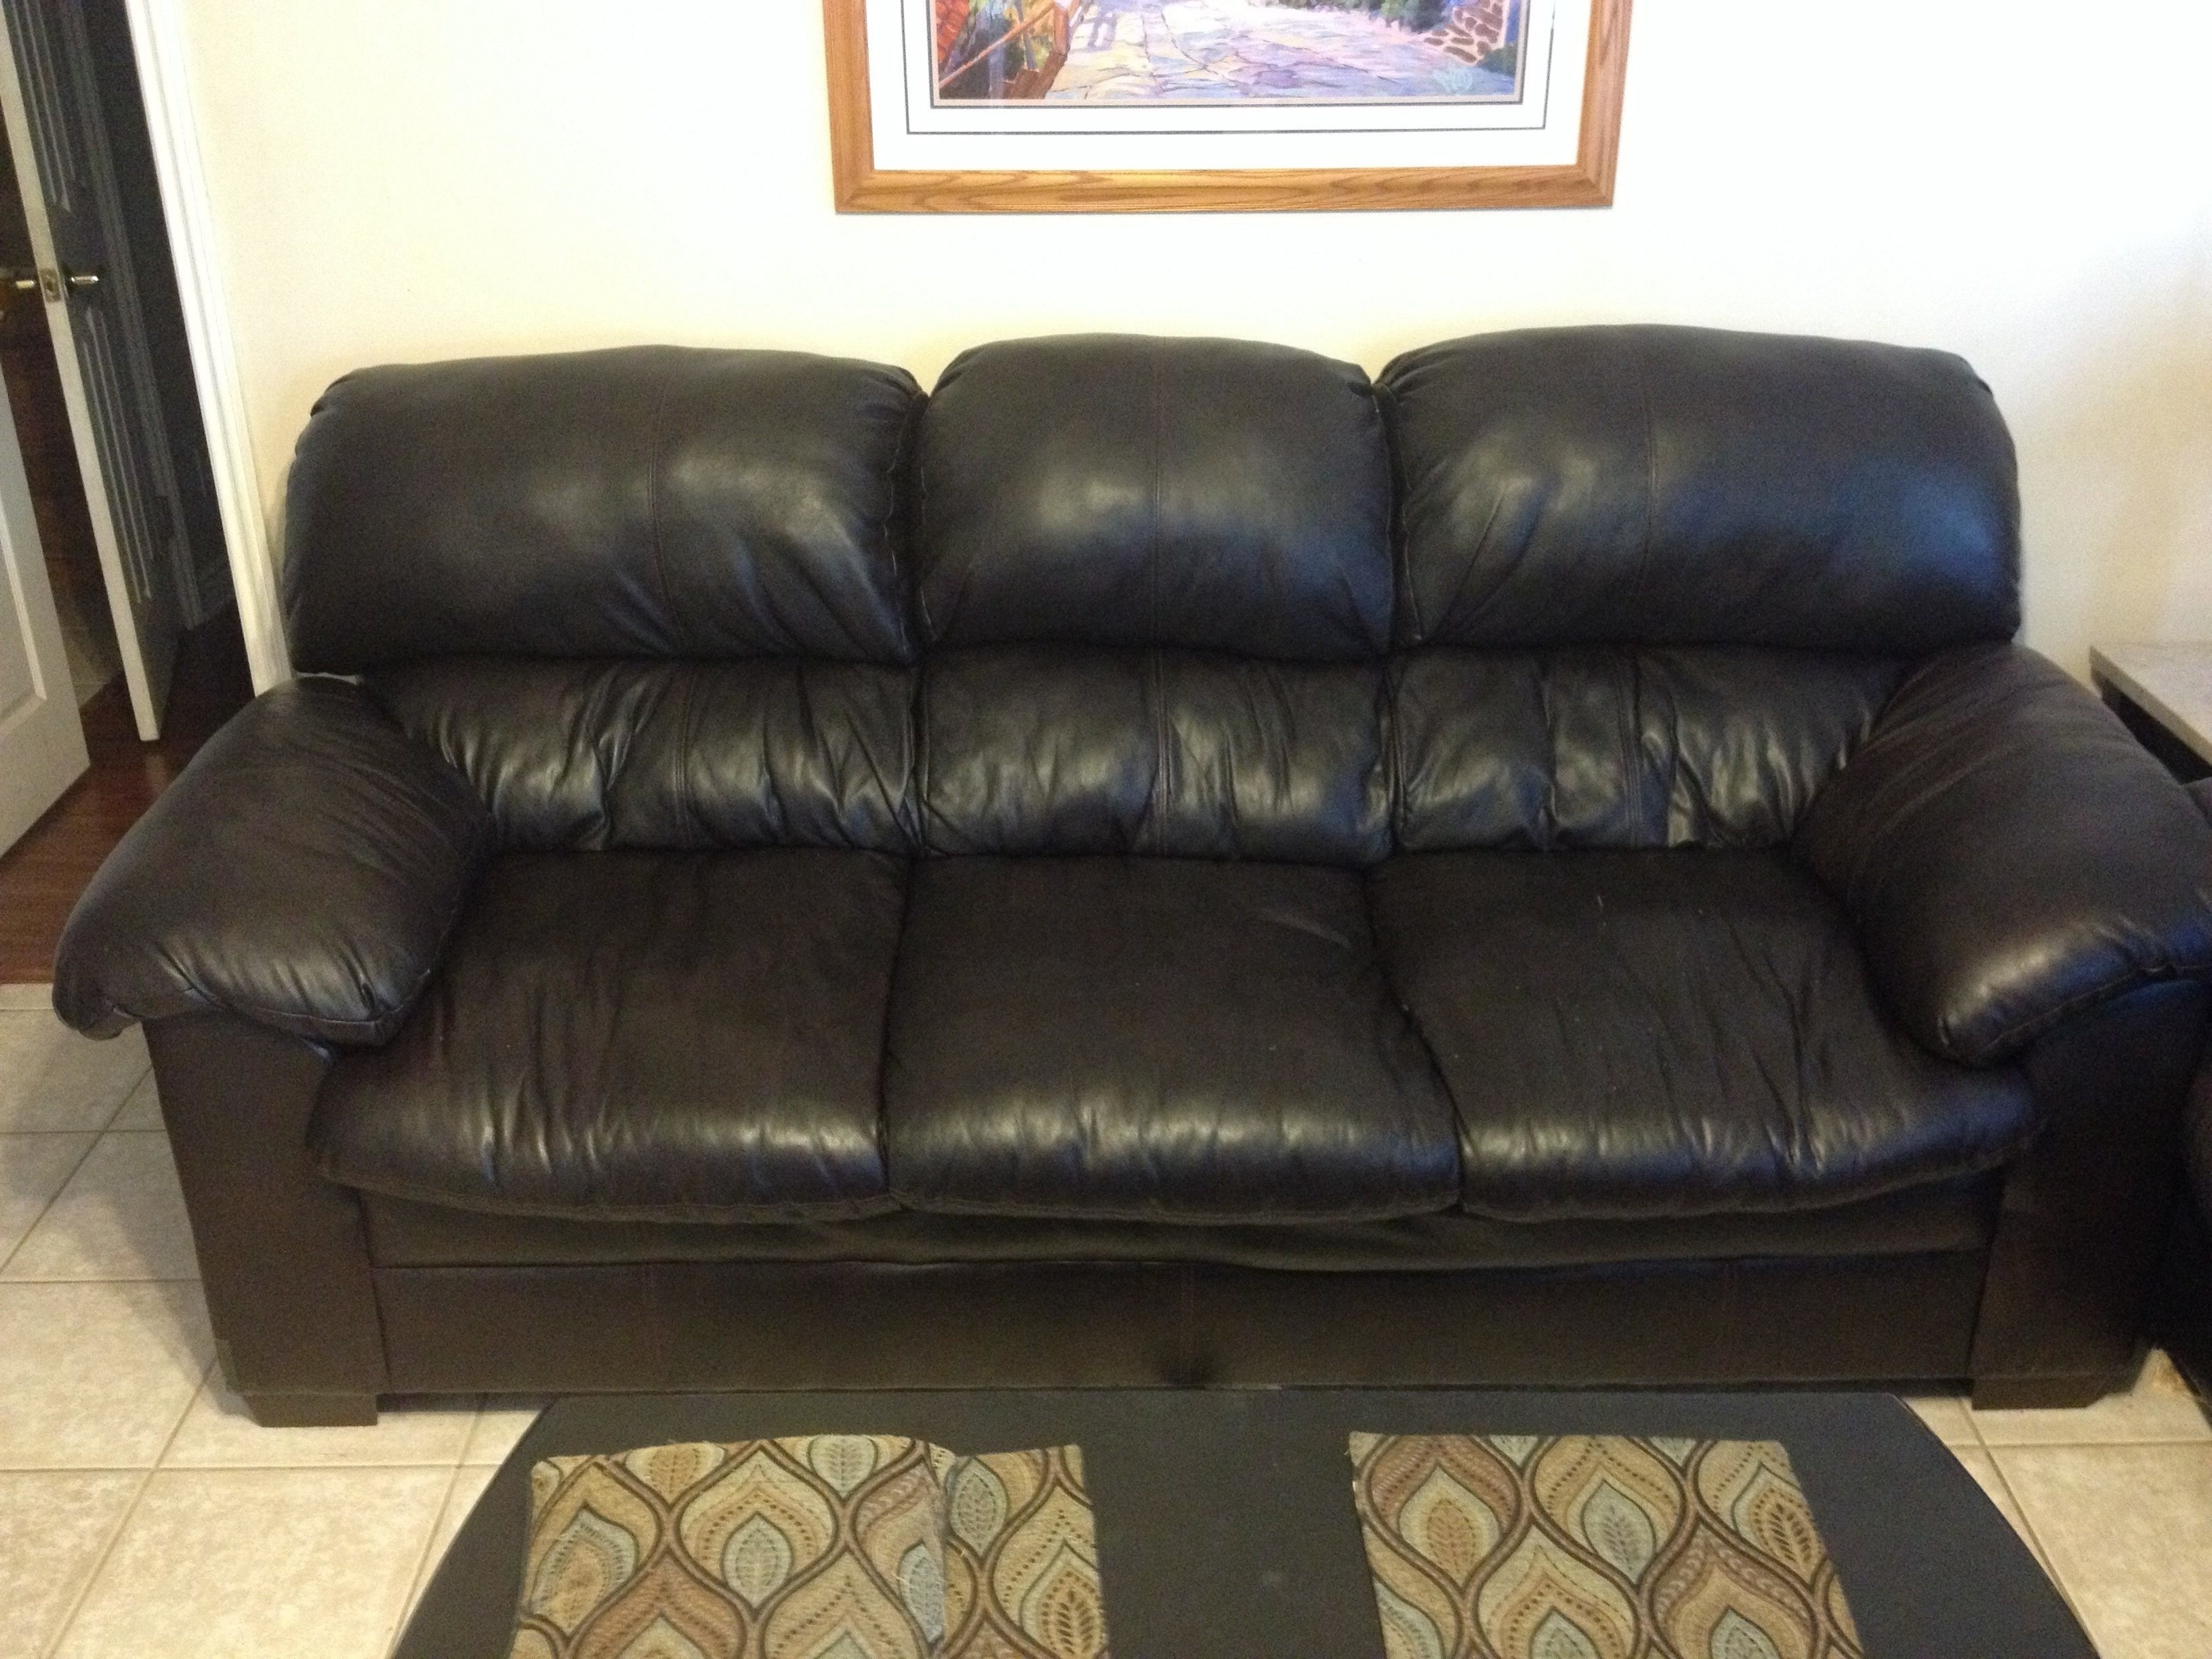 Image Gallery Of Big Lots Sofas View 2 Of 20 Photos